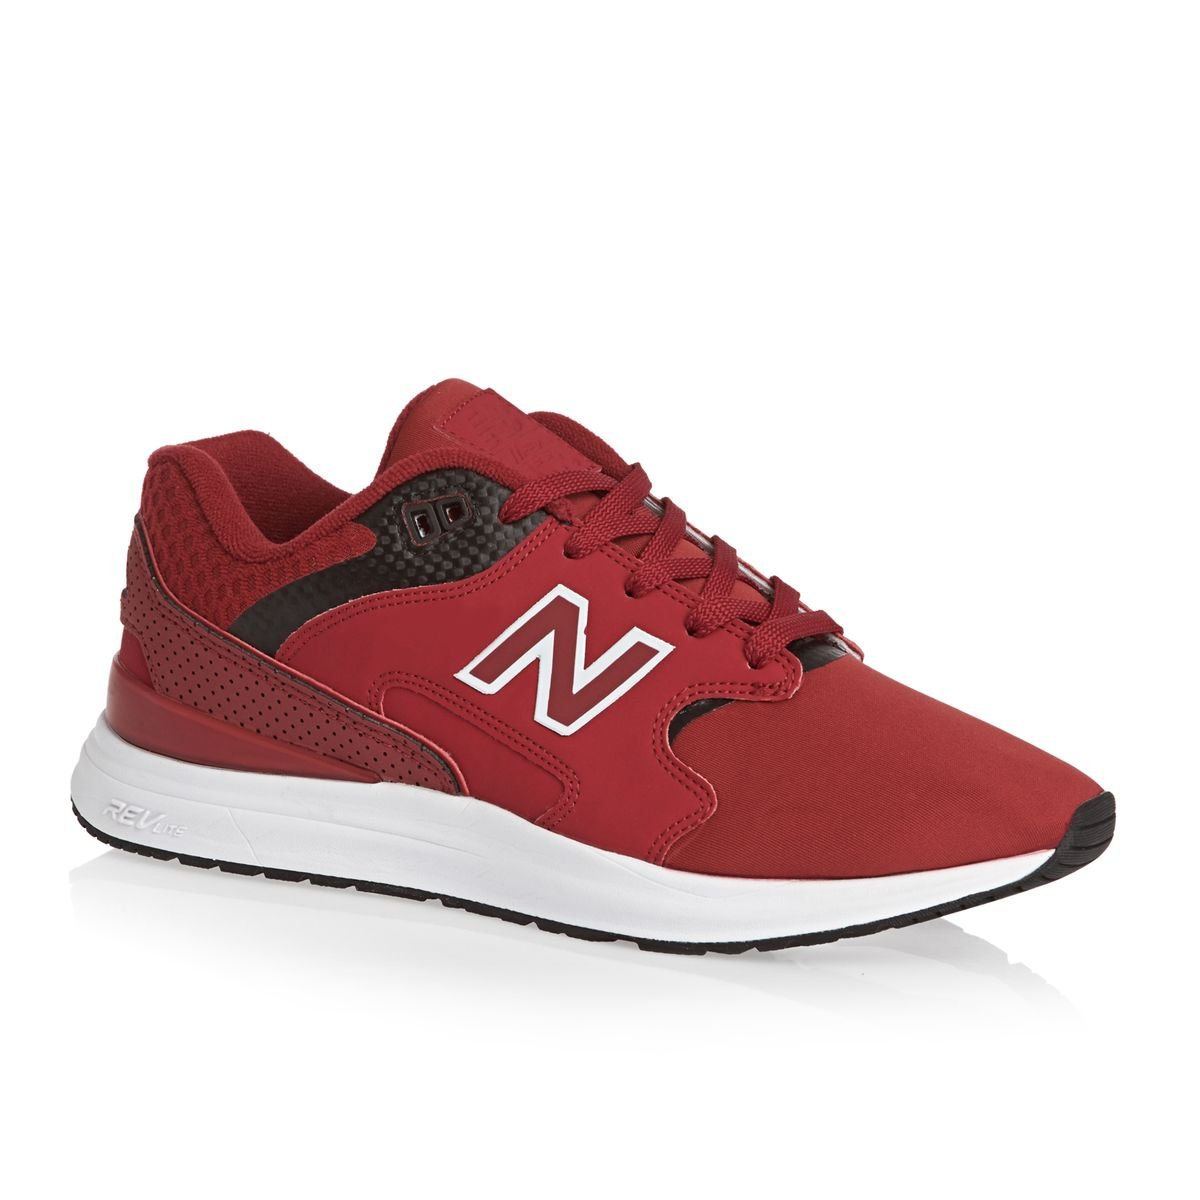 Zapatillas New Balance ML1550 Granate 42 Granate